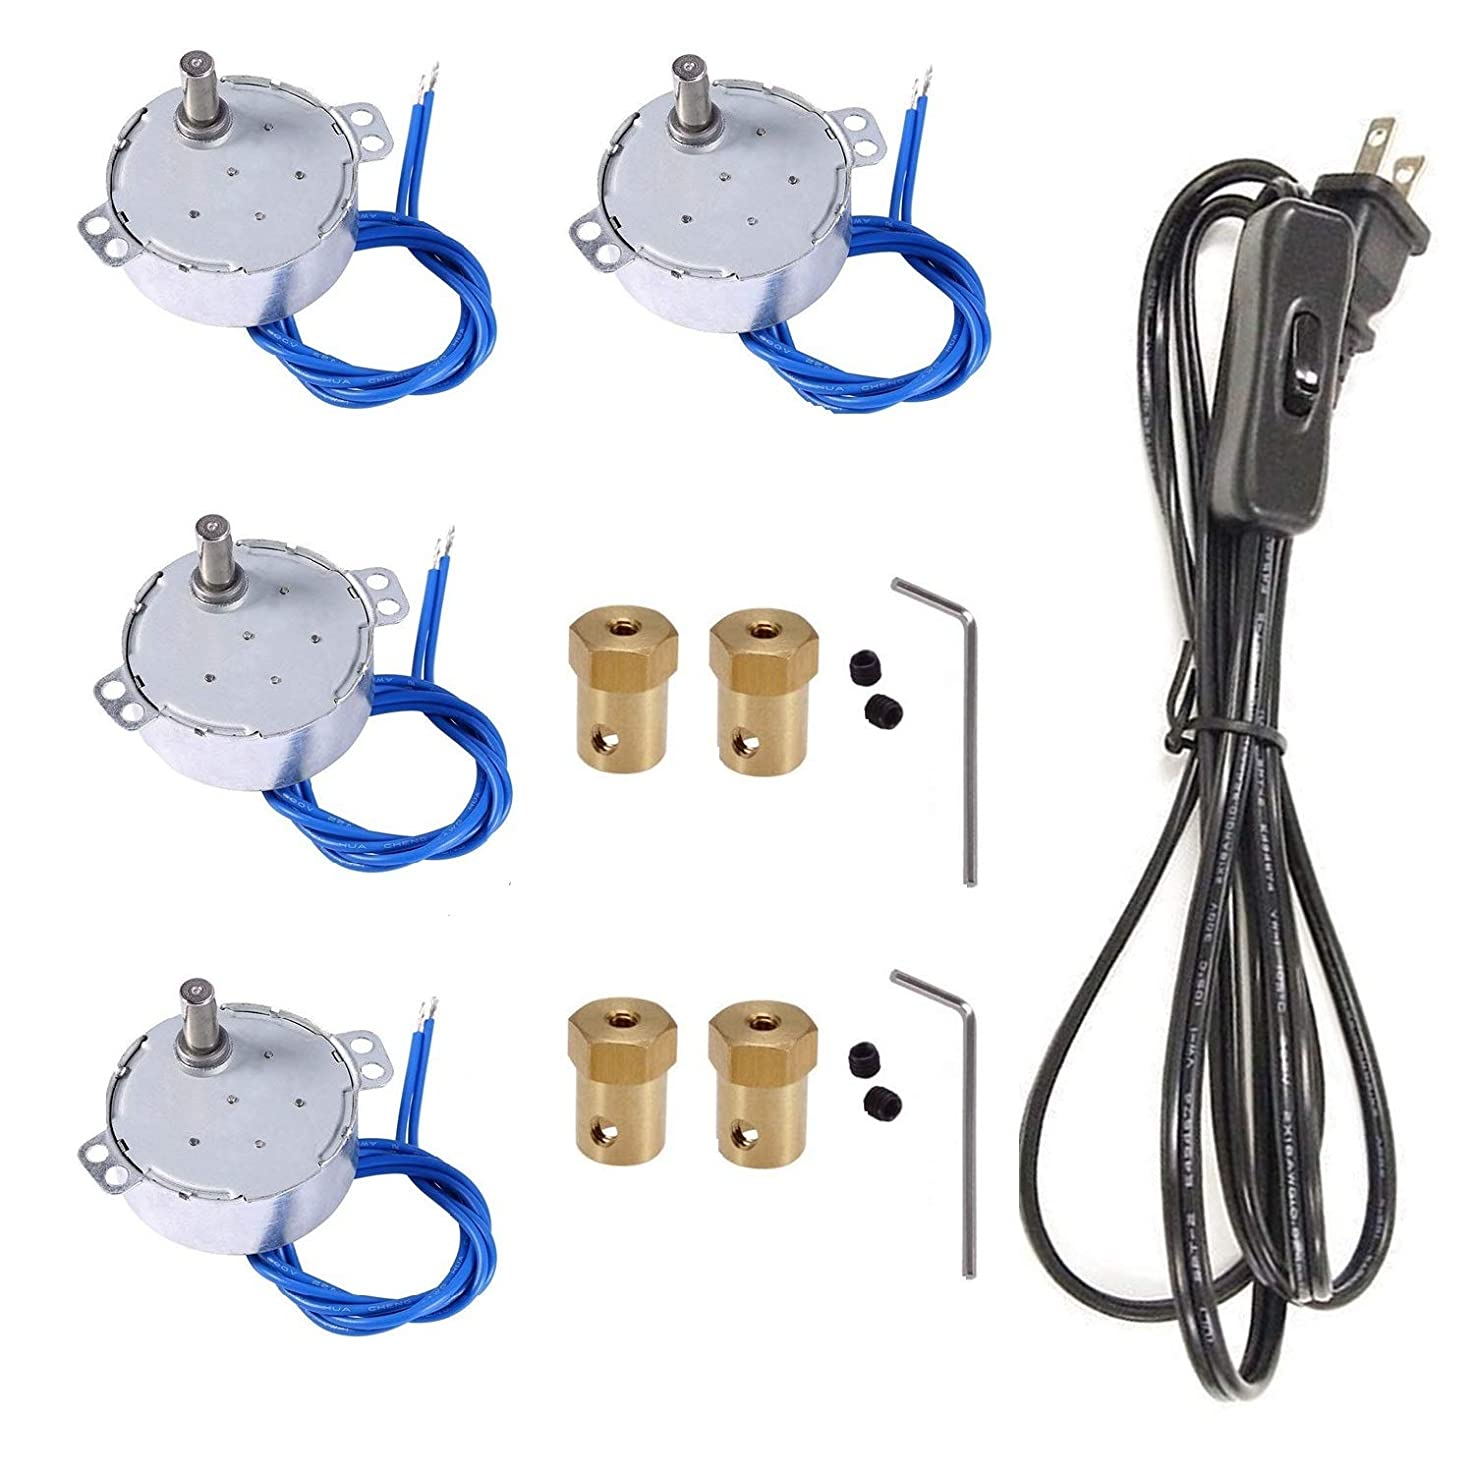 4PCS Turntable motor Synchronous Synchron Motor 50/60Hz AC100~127V CCW/CW 4W with 7mm Flexible Coupling Connector and 6ft PowerCord Switch Plug For Cup Turner,Hand-Made, School Project, Model (2.5-3R)